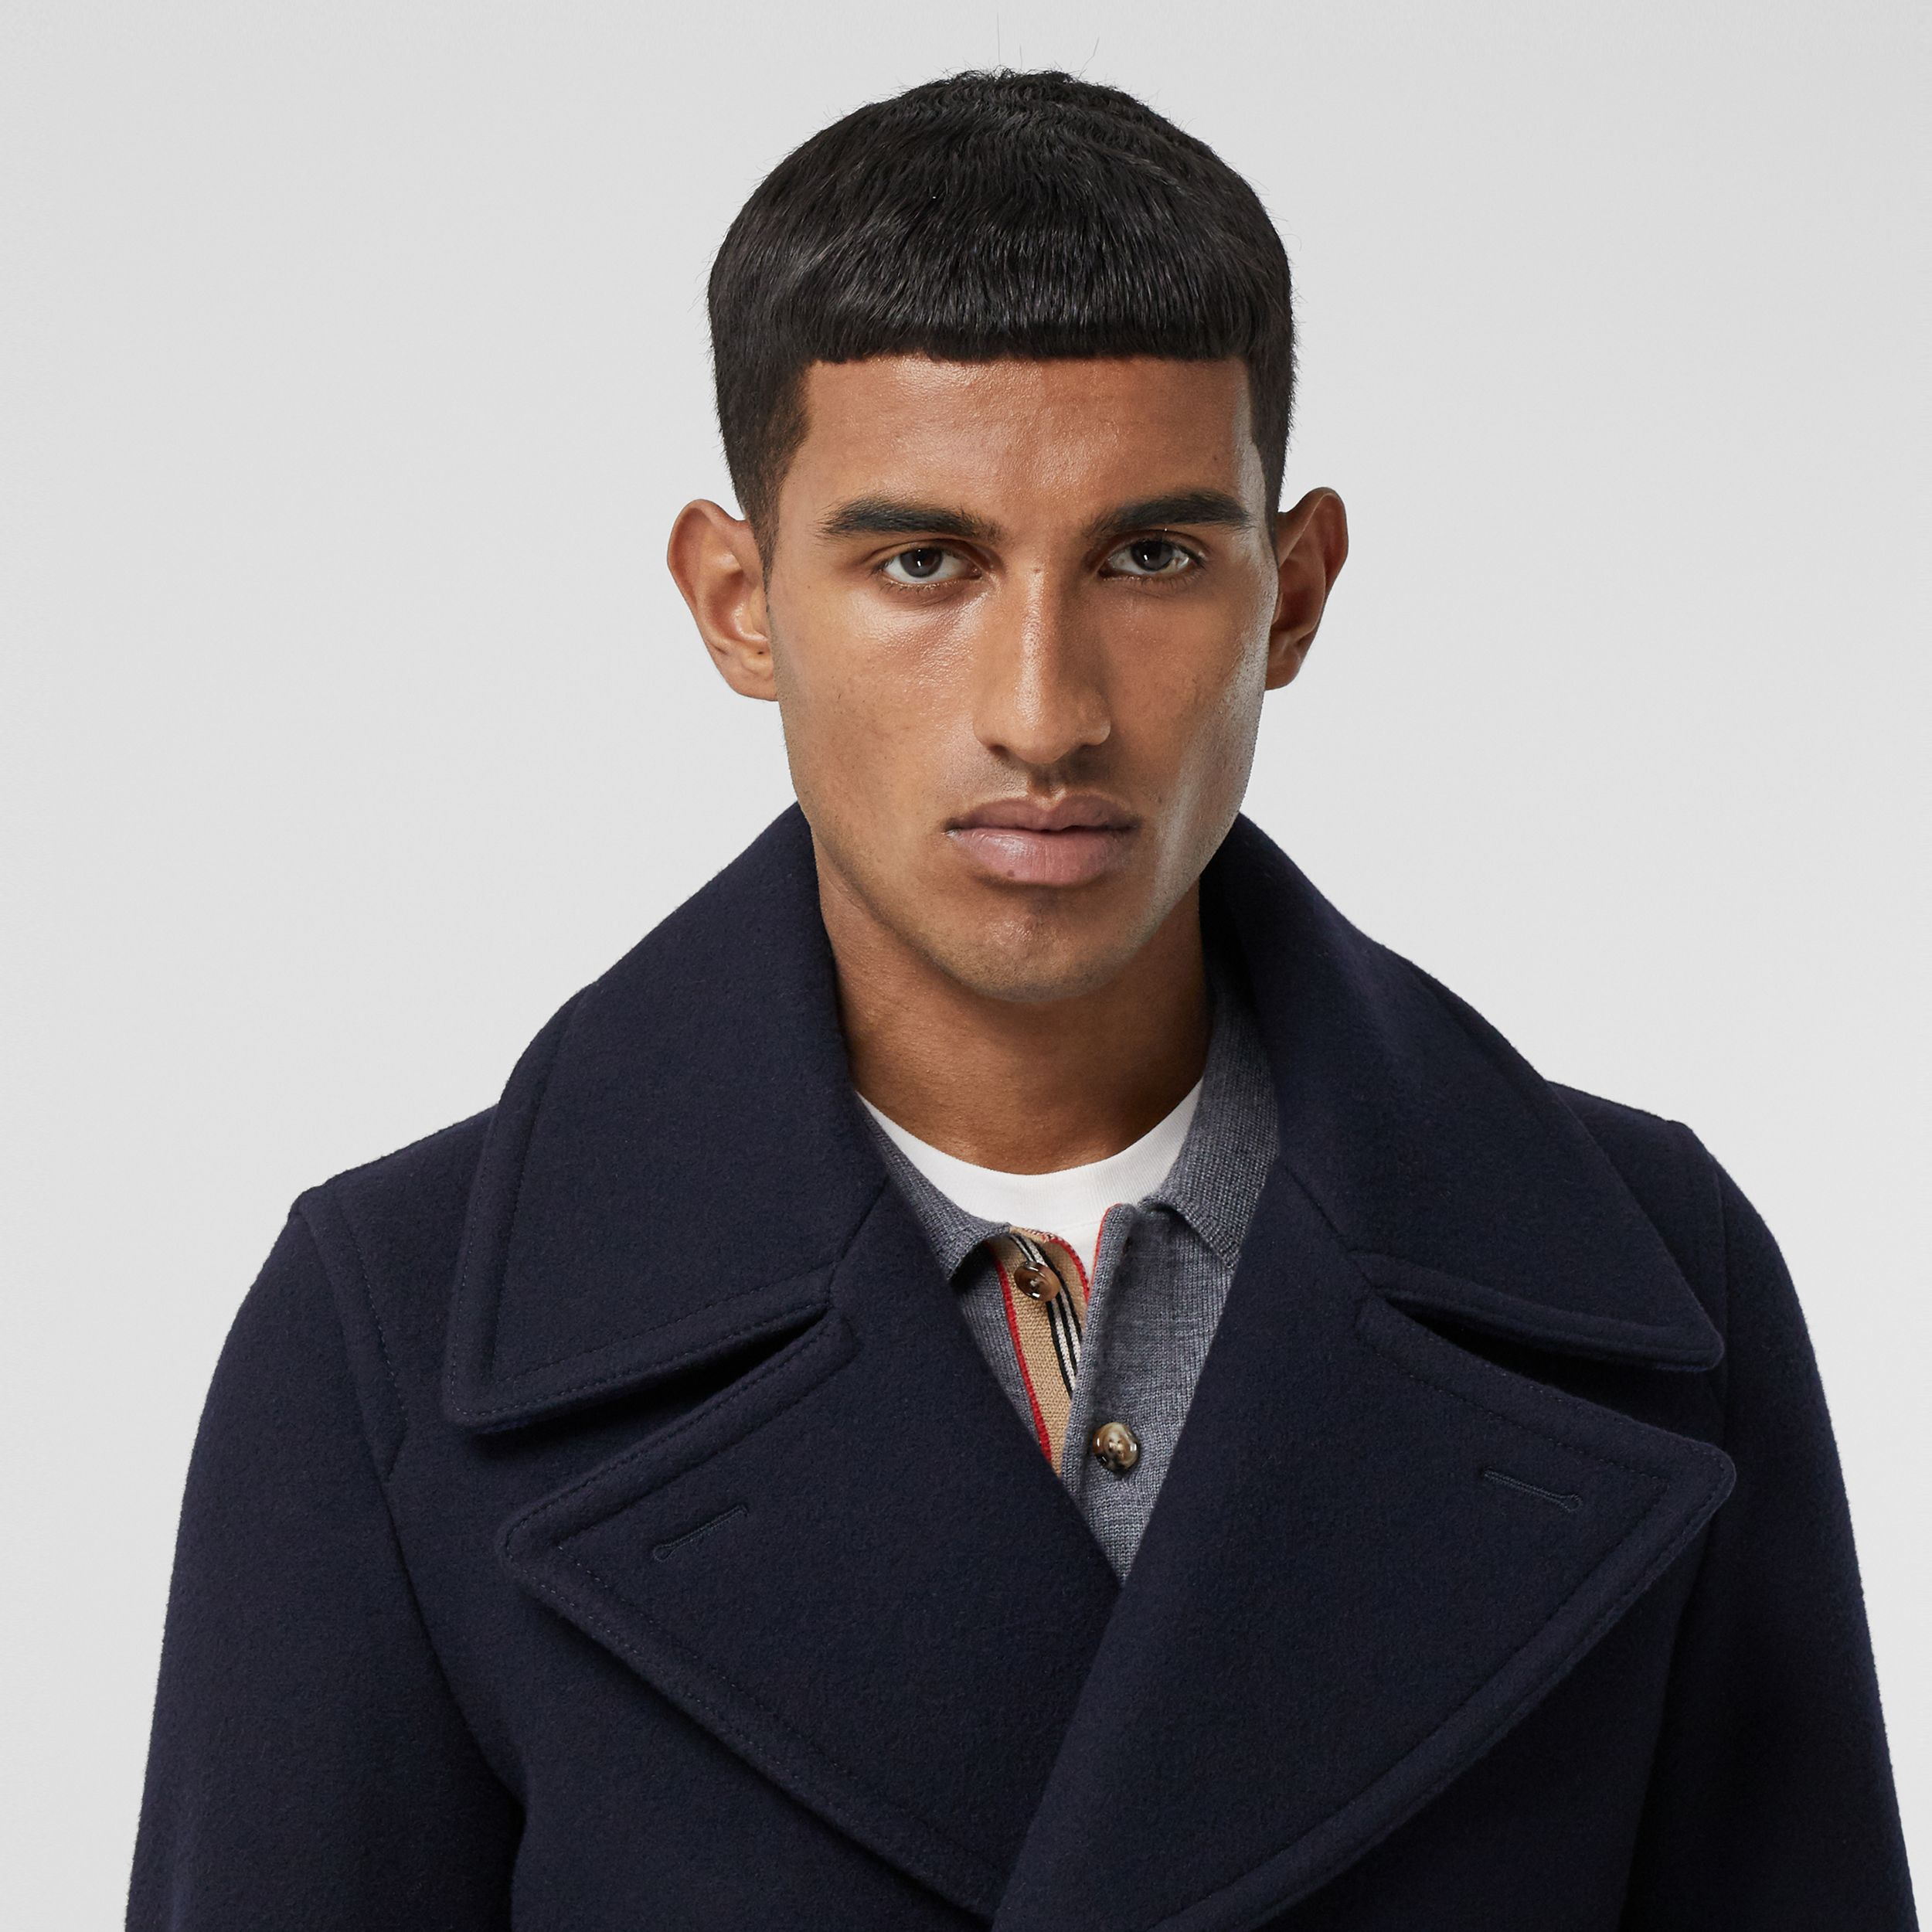 Wool Blend Pea Coat in Navy - Men | Burberry United States - 2